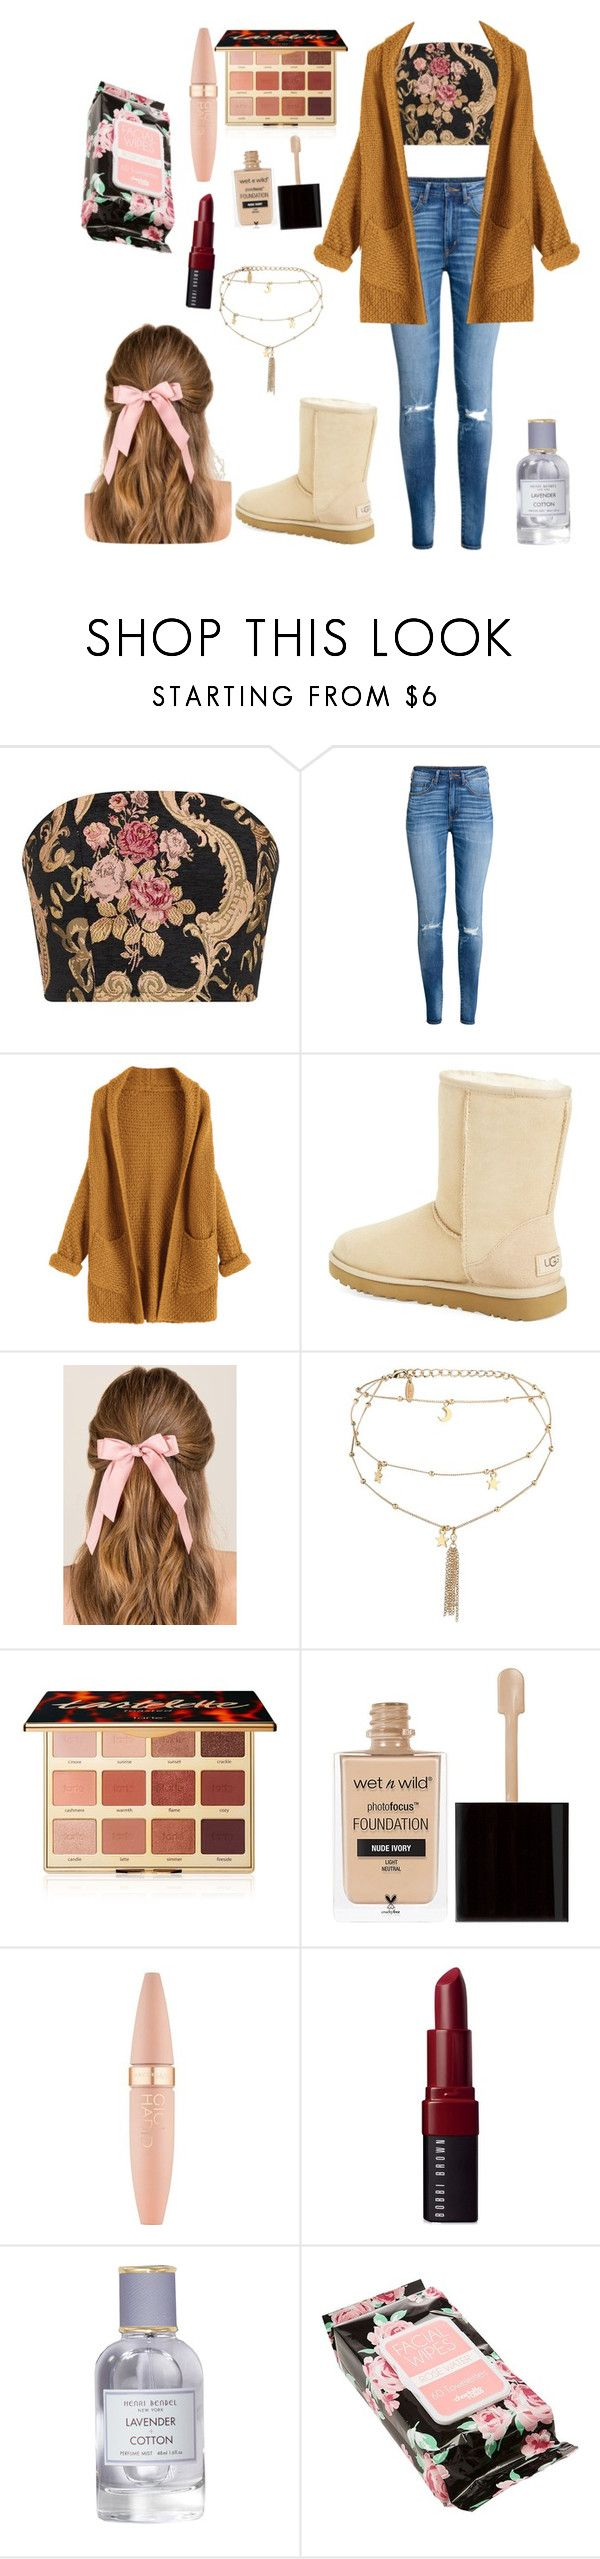 """""""reasonable-ish price"""" by fall-leaves-lily ❤ liked on Polyvore featuring H&M, UGG, Francesca's, Ettika, tarte, Wet n Wild, Maybelline, Bobbi Brown Cosmetics, Henri Bendel and Charlotte Russe"""